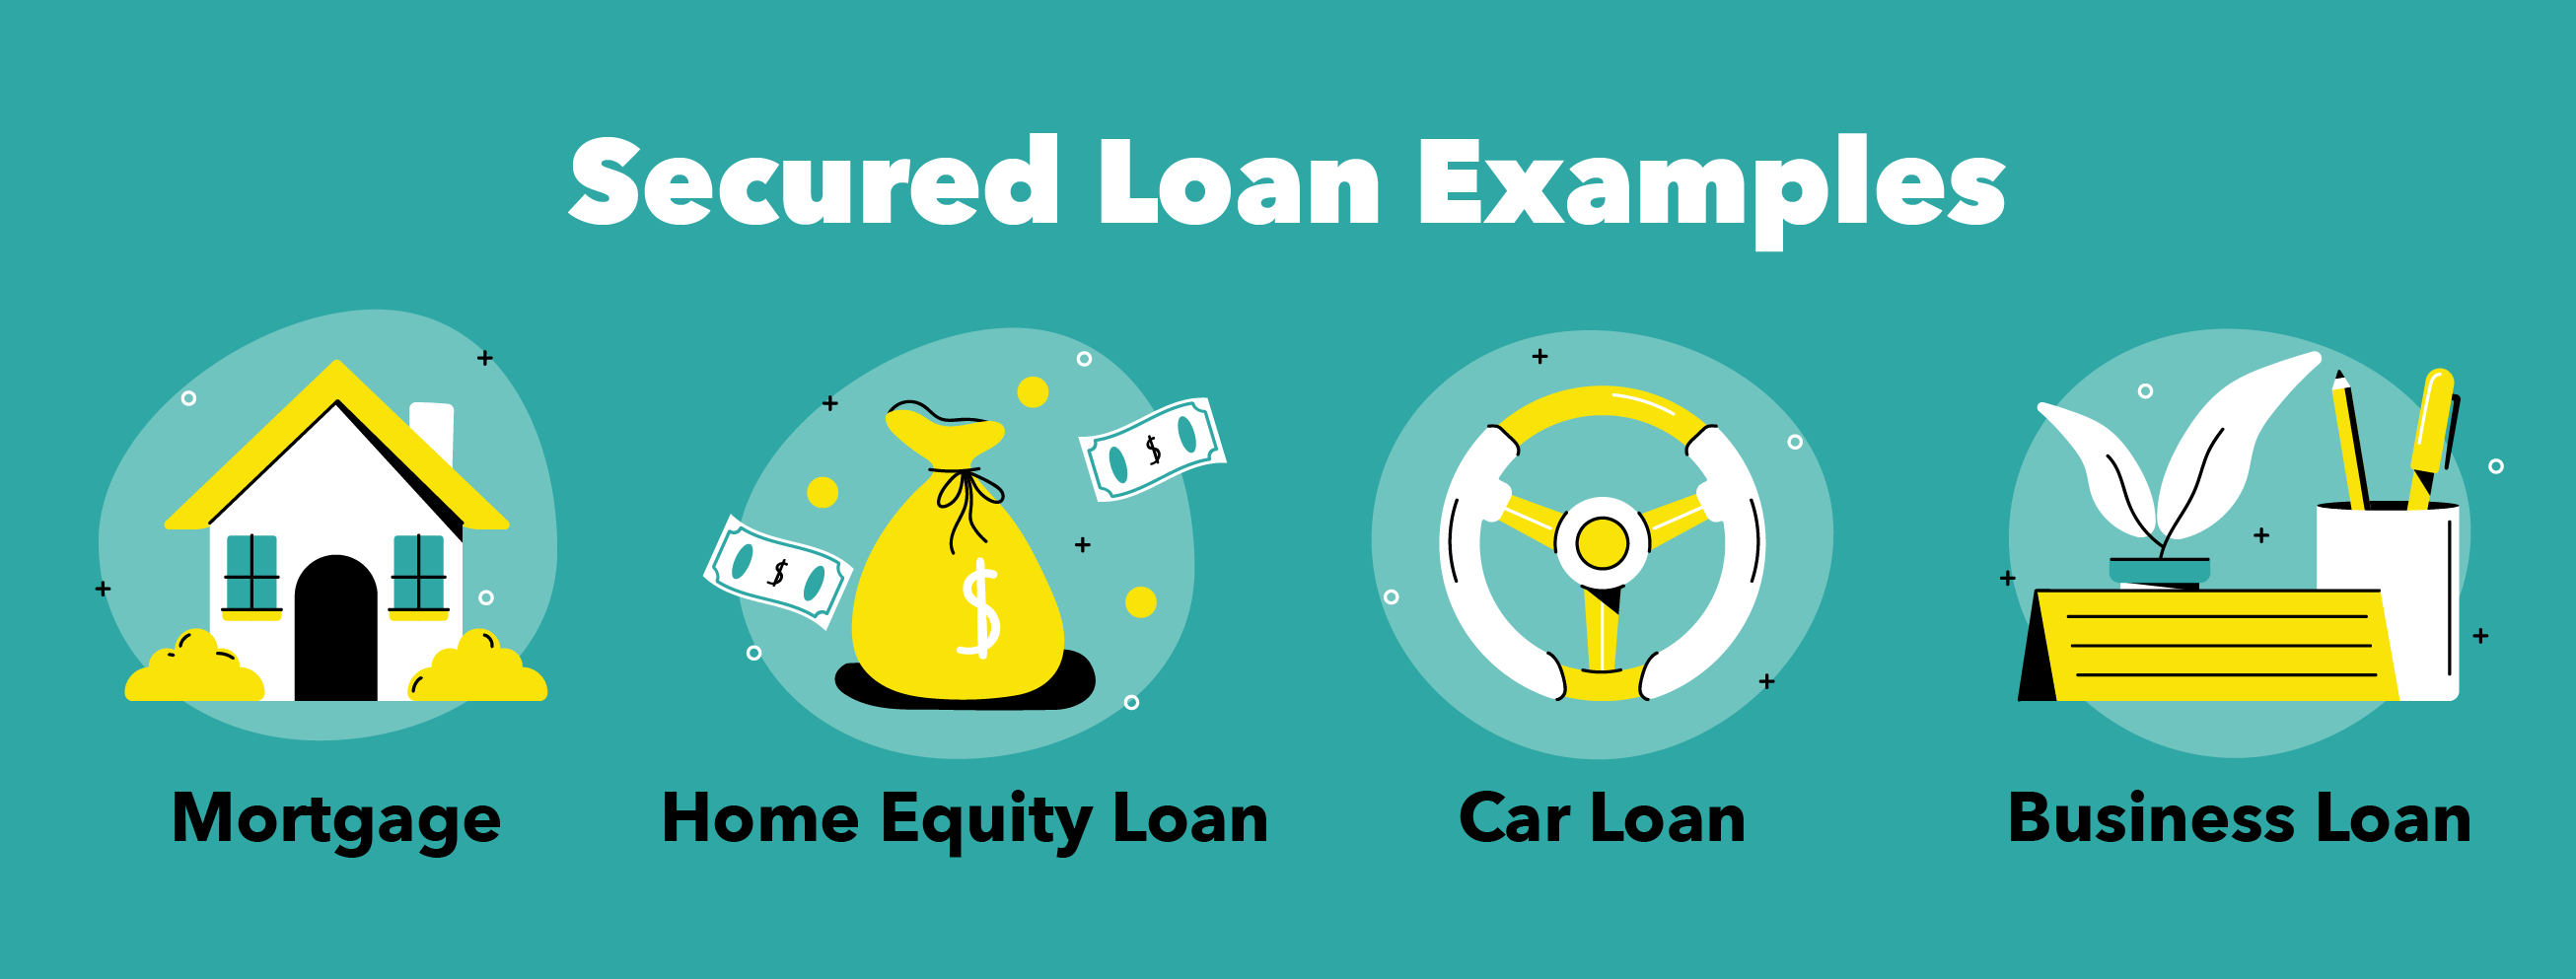 Secured Loan Examples